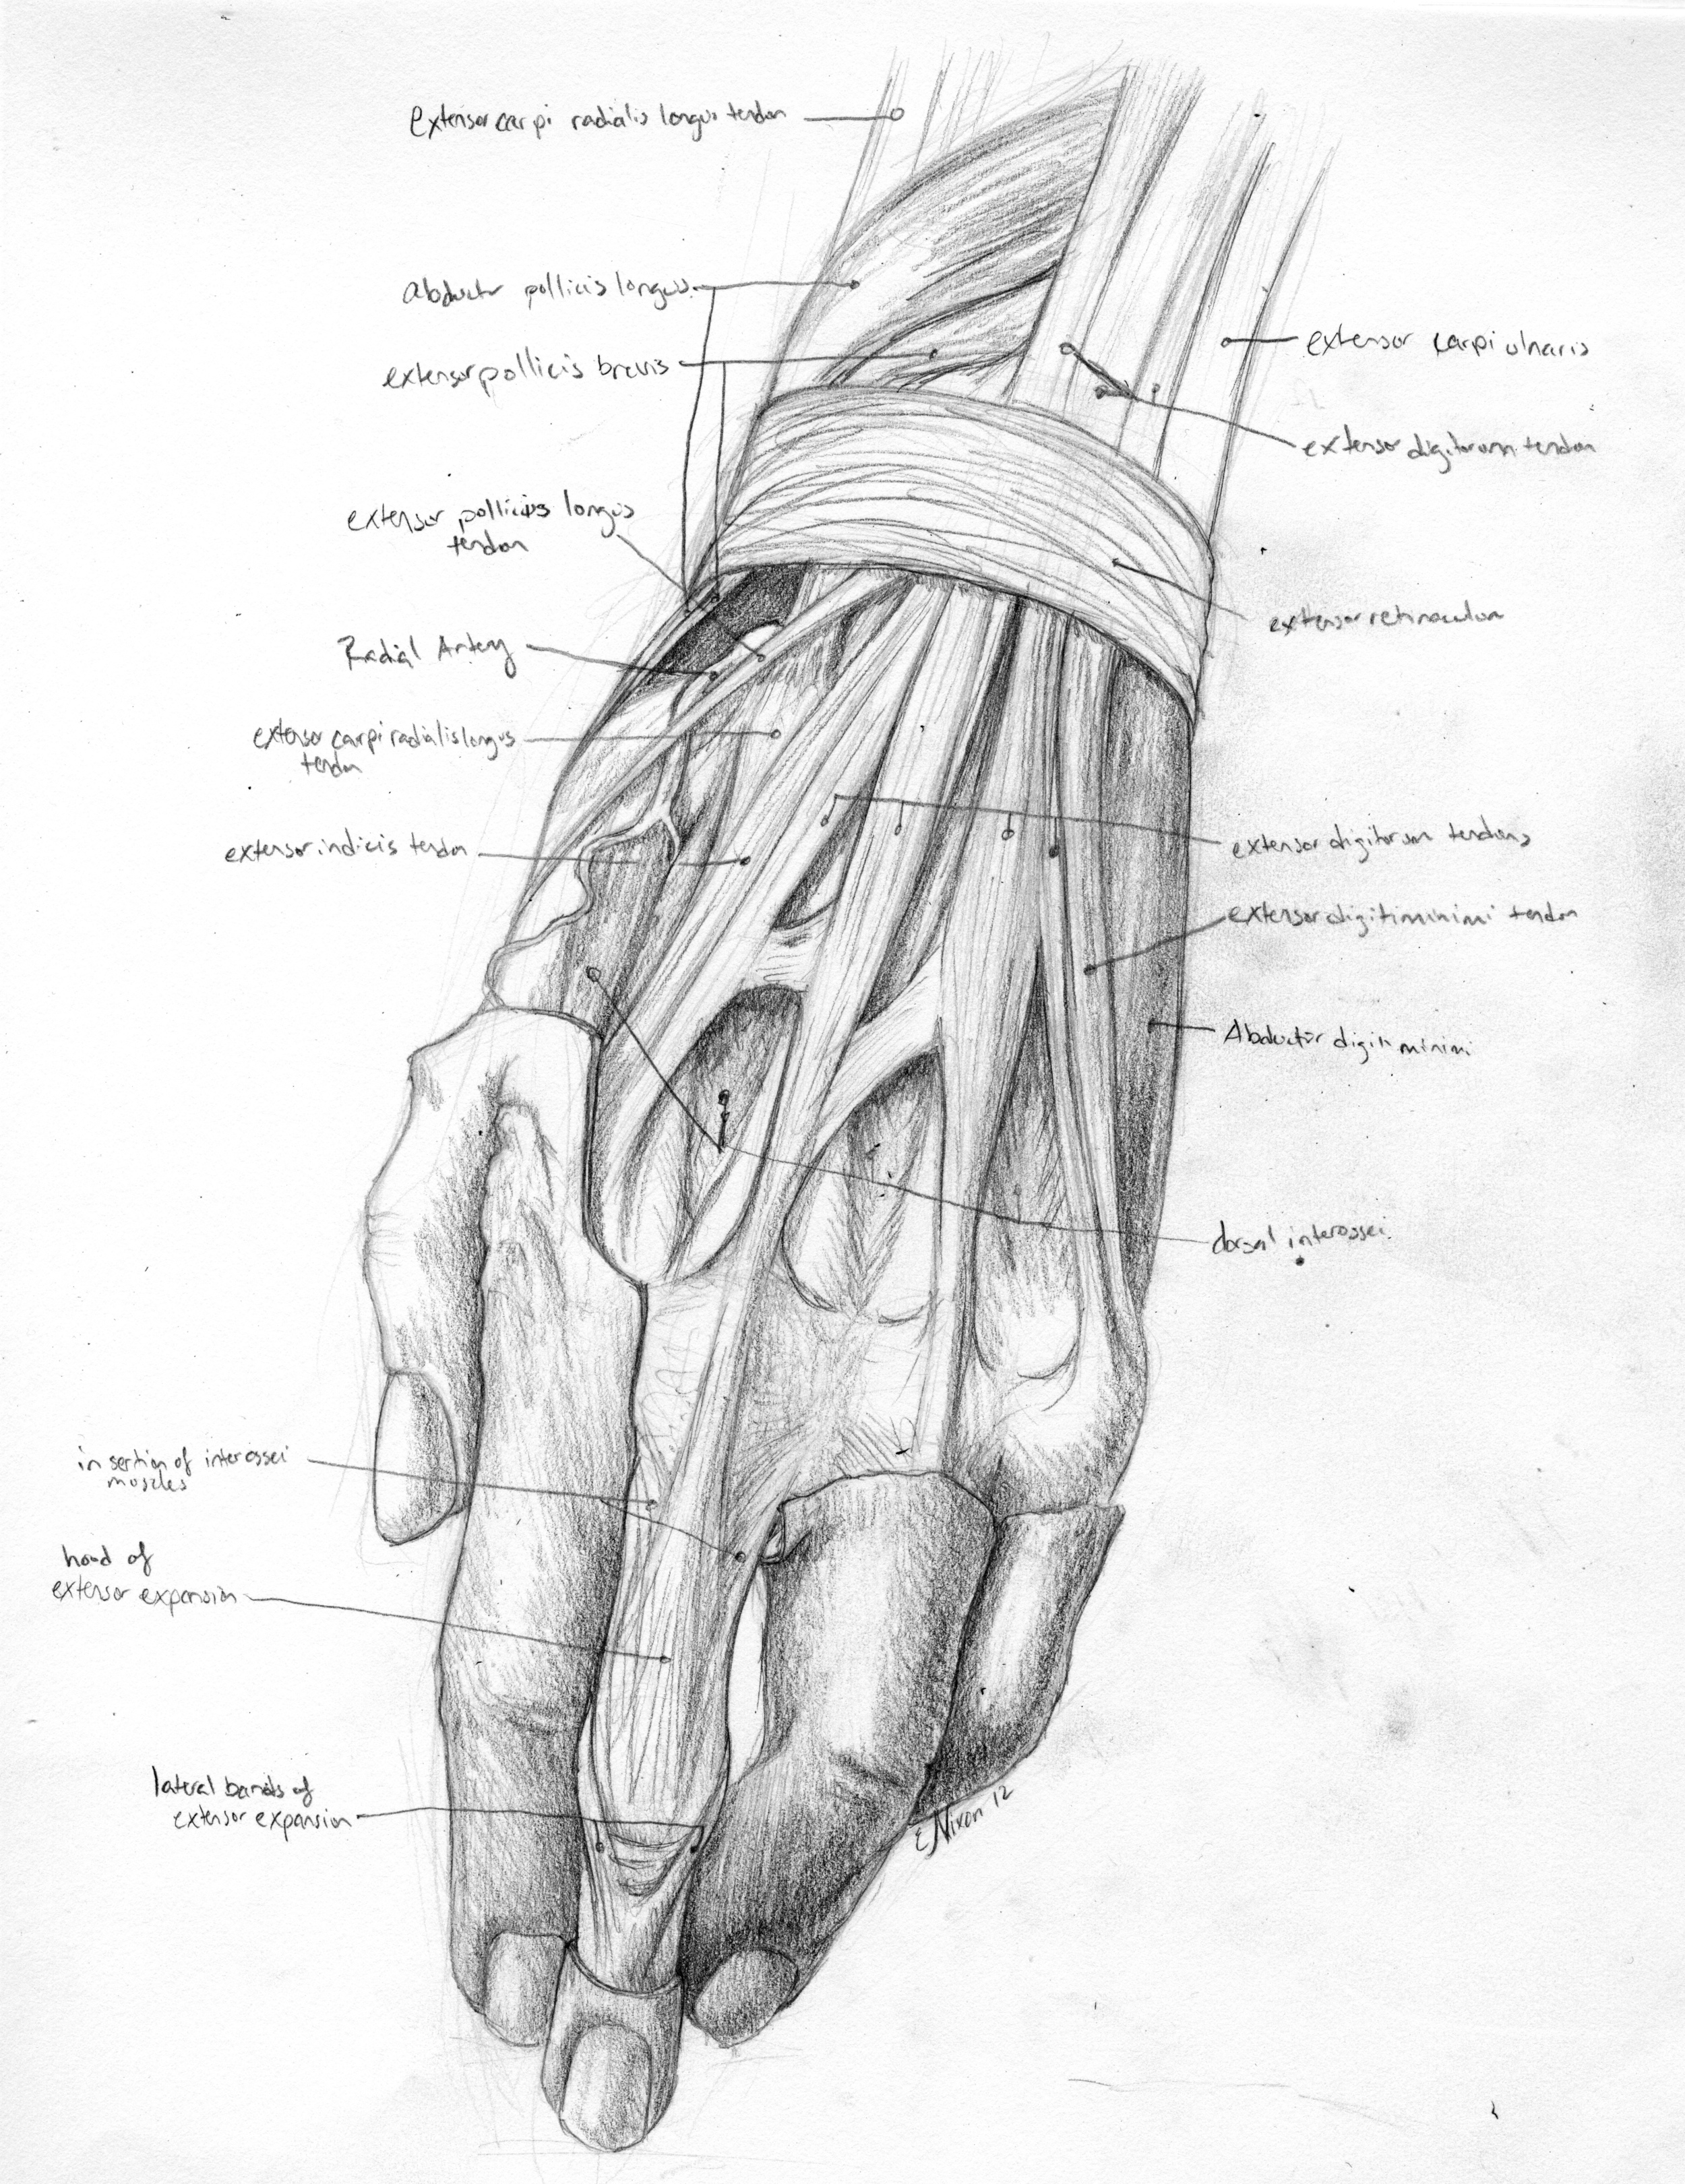 Dorsal Hand Dissection